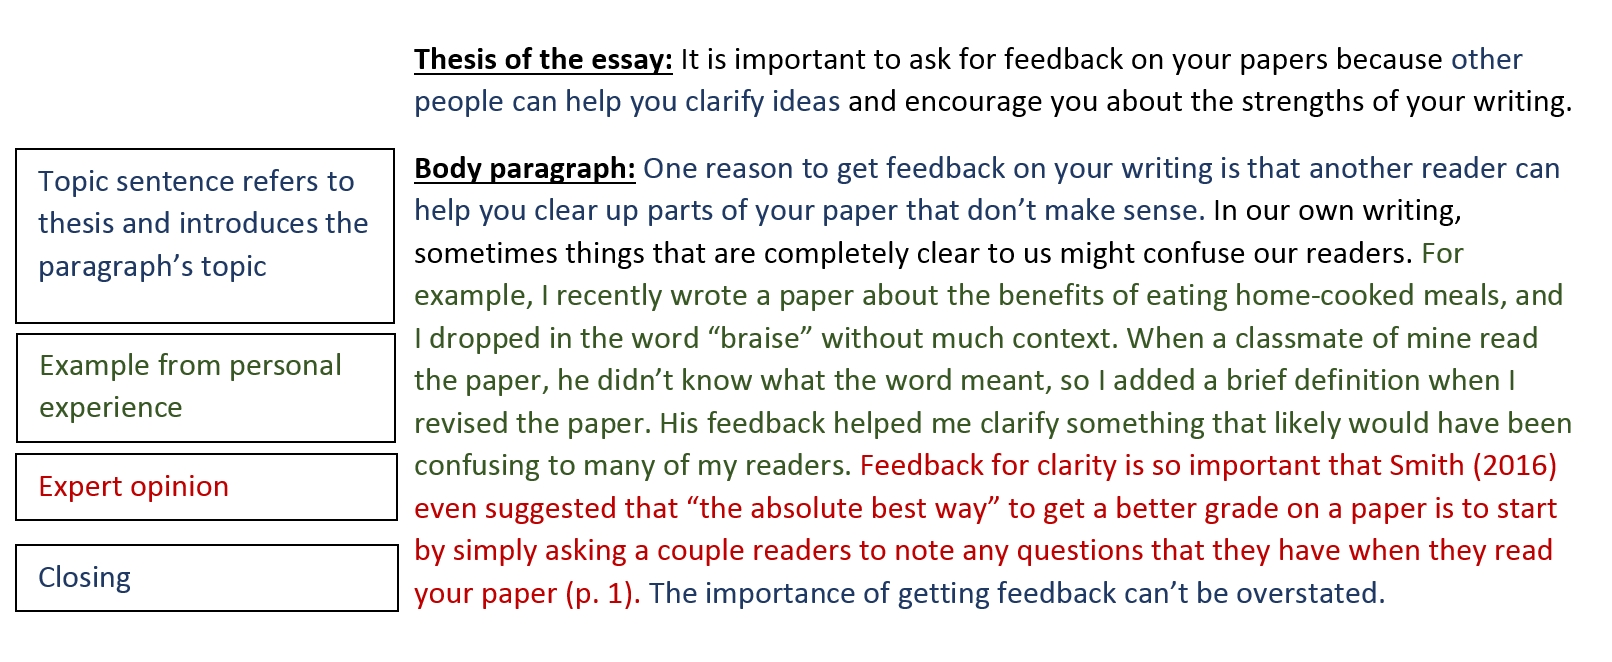 013 Body Paragraphs Writing Your Paper Research Guidest Eastern Regarding Paragraph Example For How To Start Stirring A New In Introduction On An Opening Full